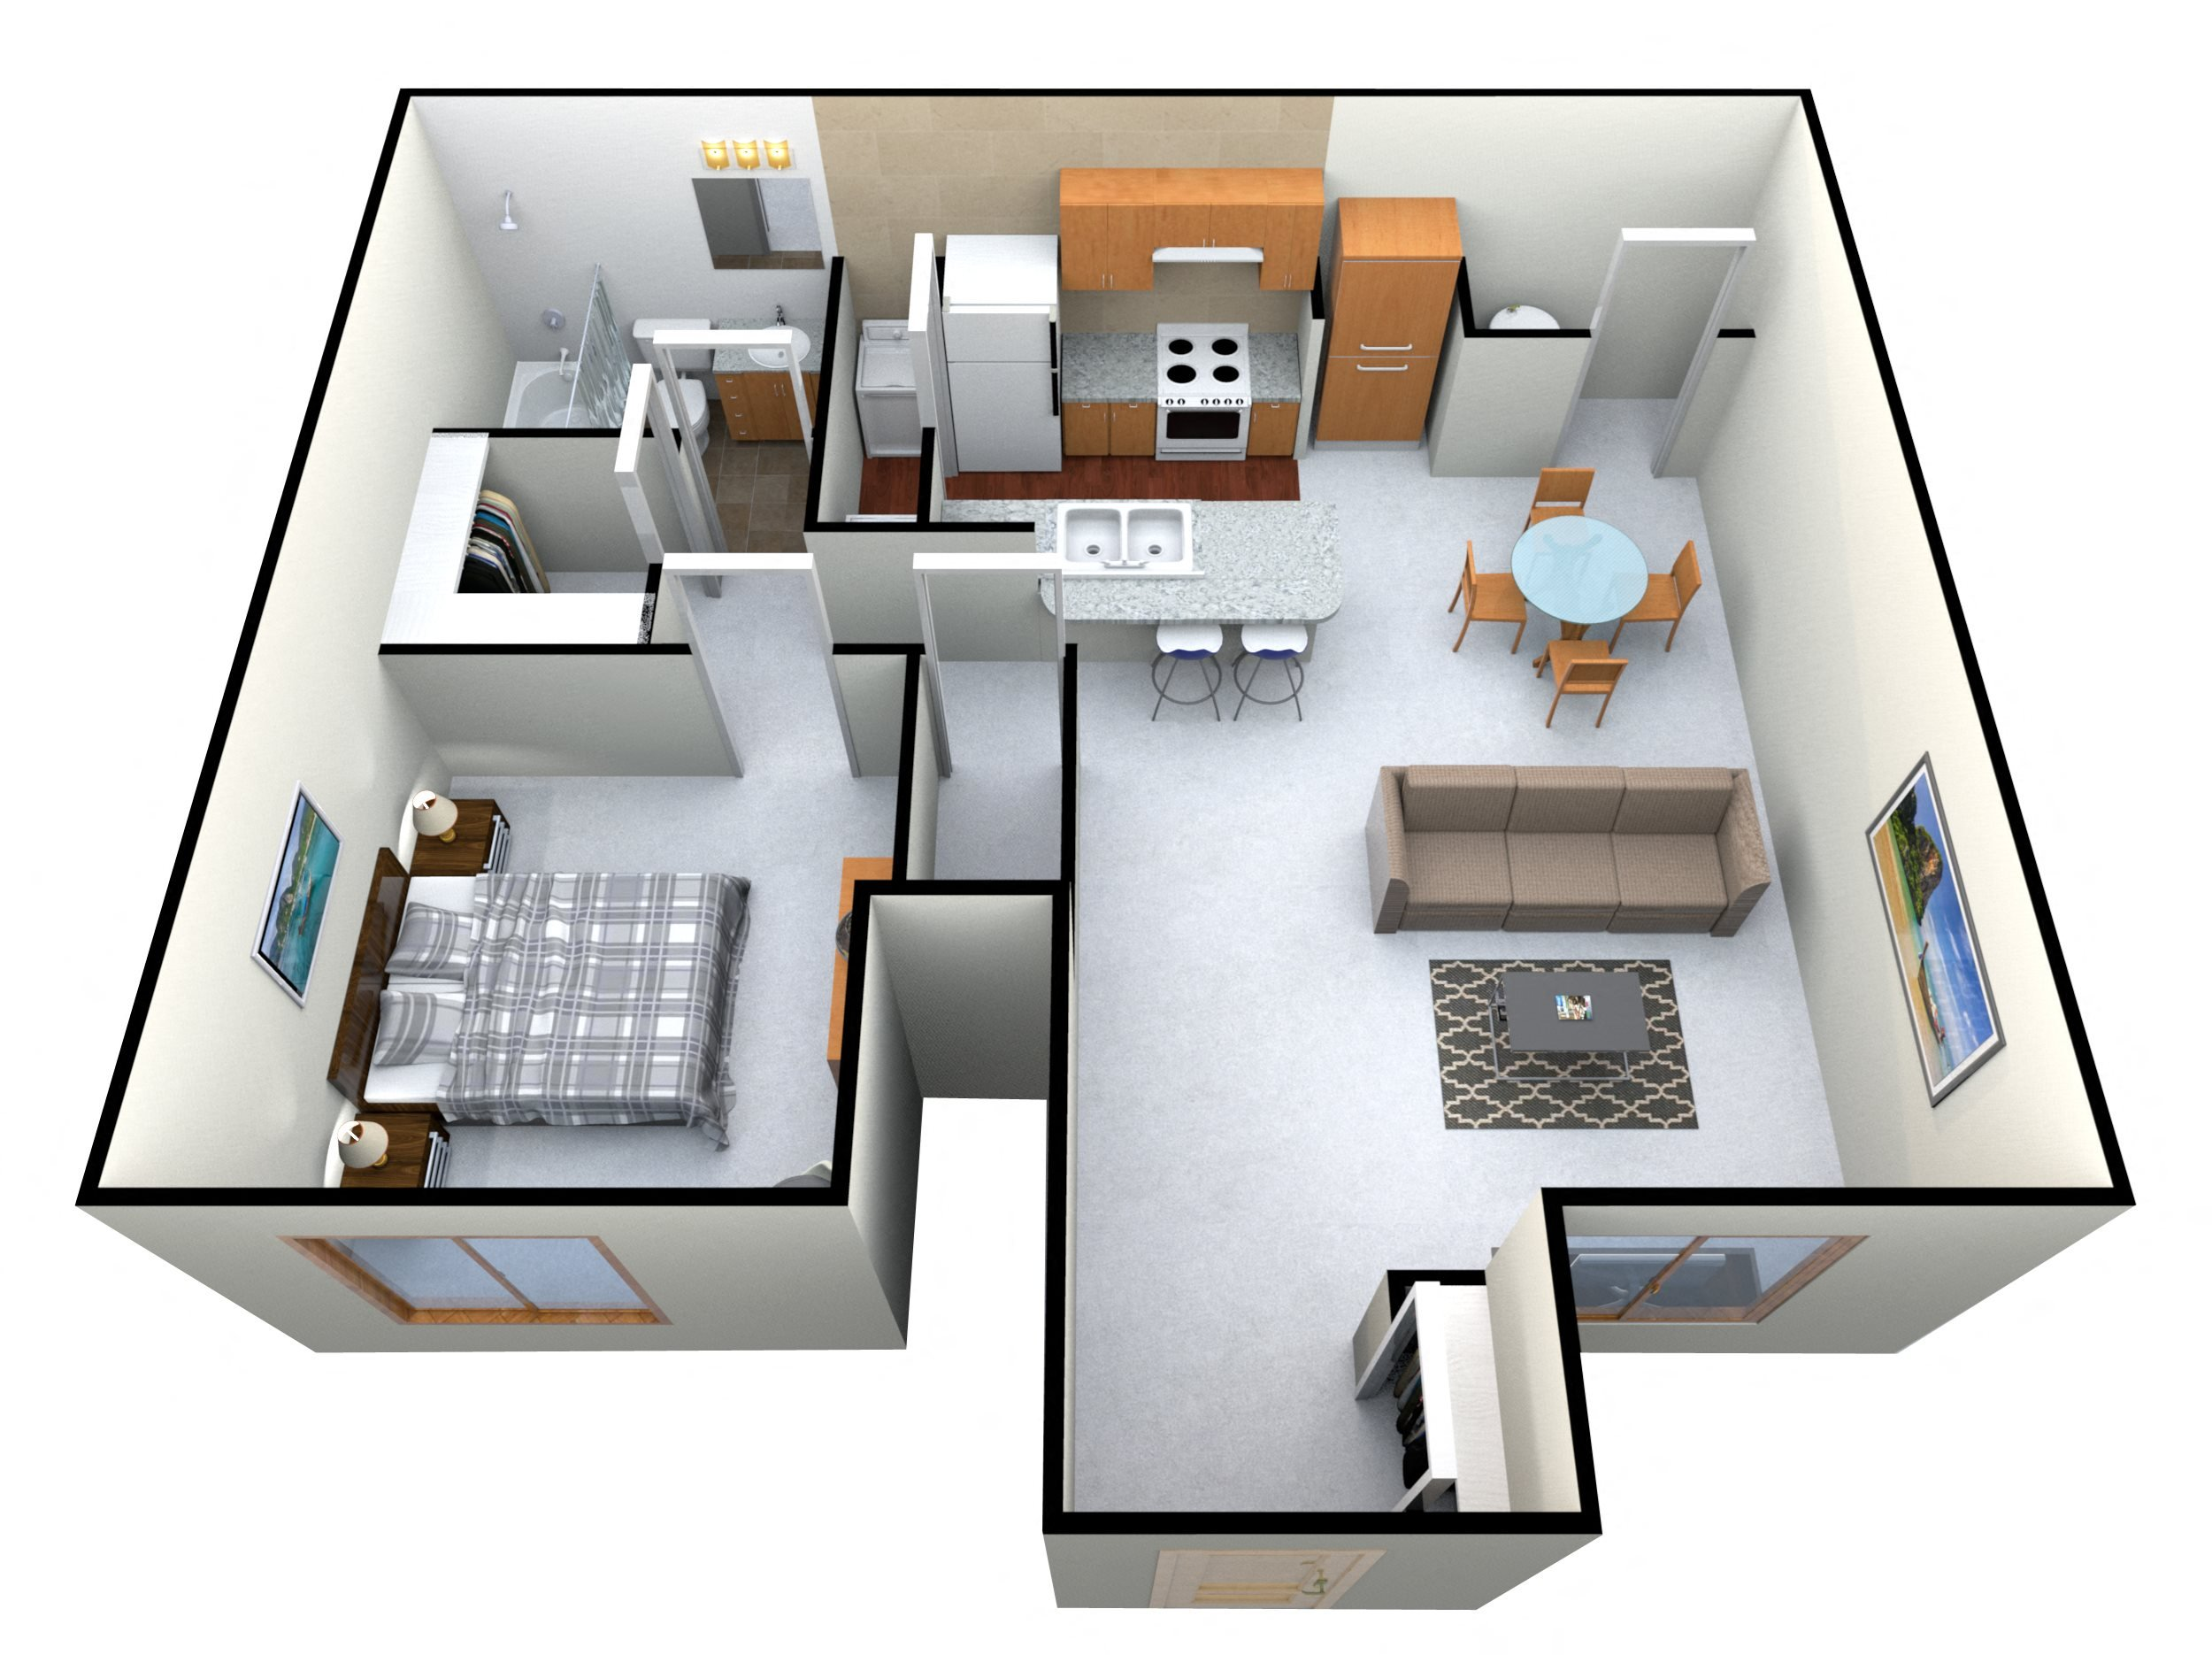 The Orion 1 2 3 Bedroom Apartments Floor Plans